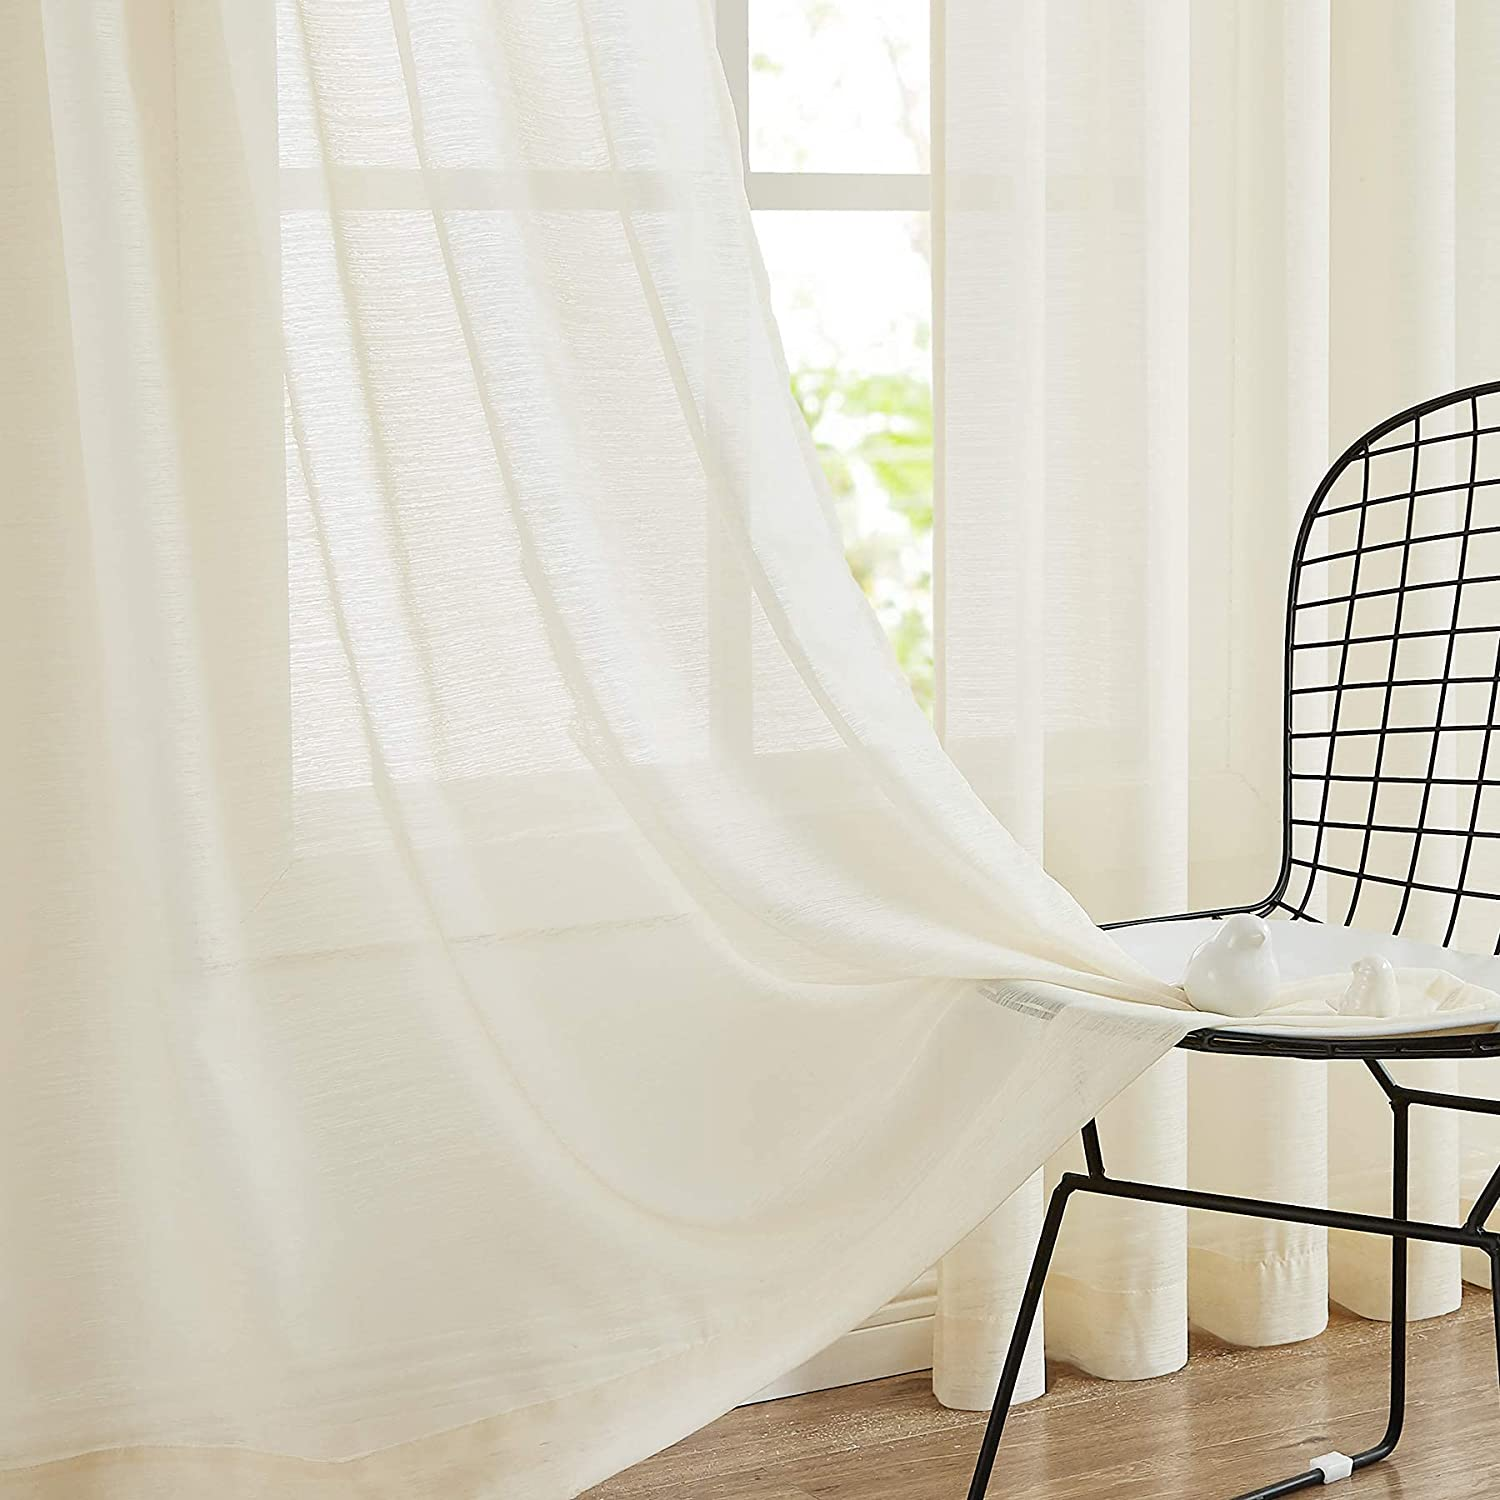 Linen Sheer Curtains 84-inch Luxury Ranking TOP14 for Trans Room Living Ivory Bedroom